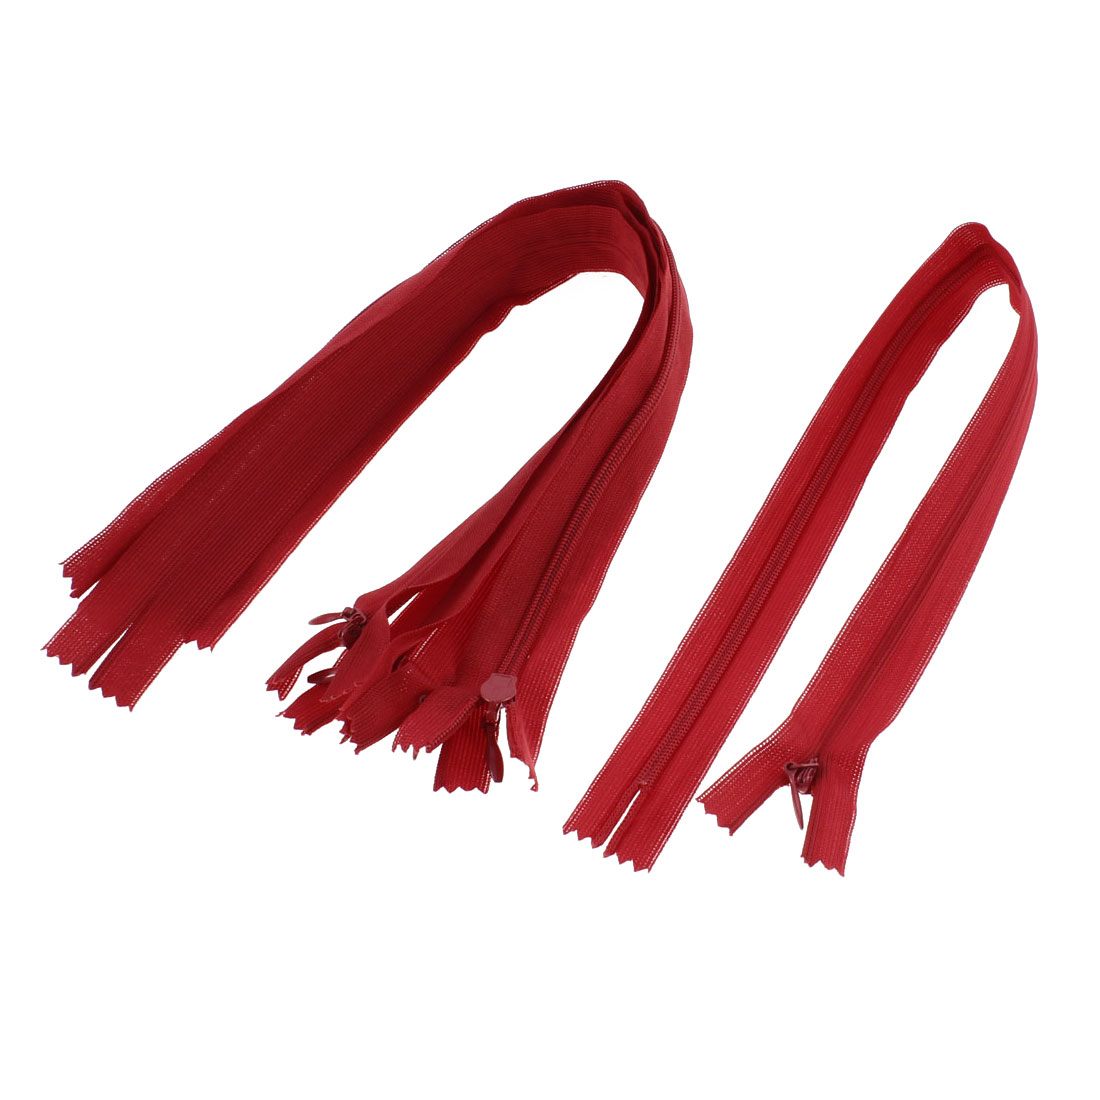 "Red Nylon Invisible Concealed Zipper 14"" Long 5 Pcs"